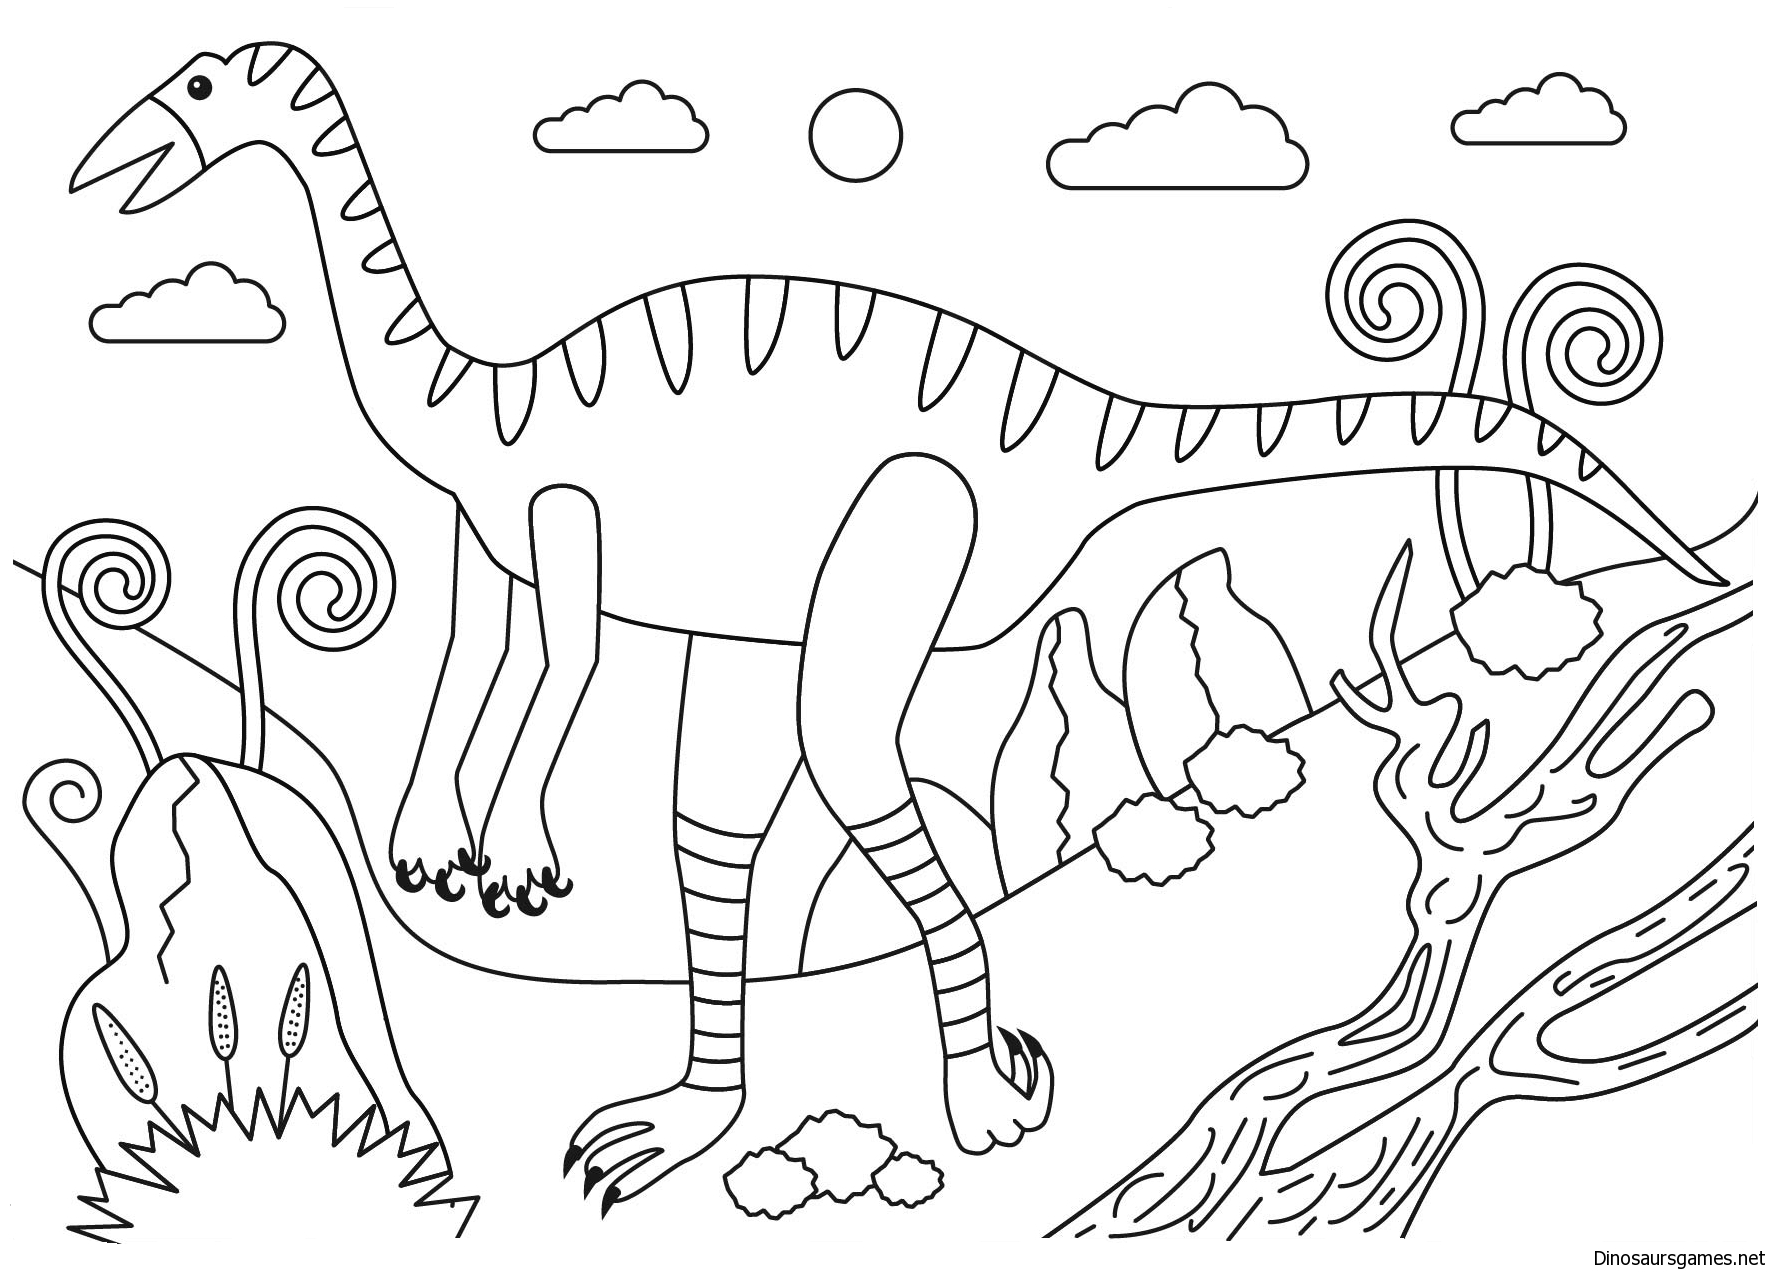 Struthiomimus dinosaur coloring page